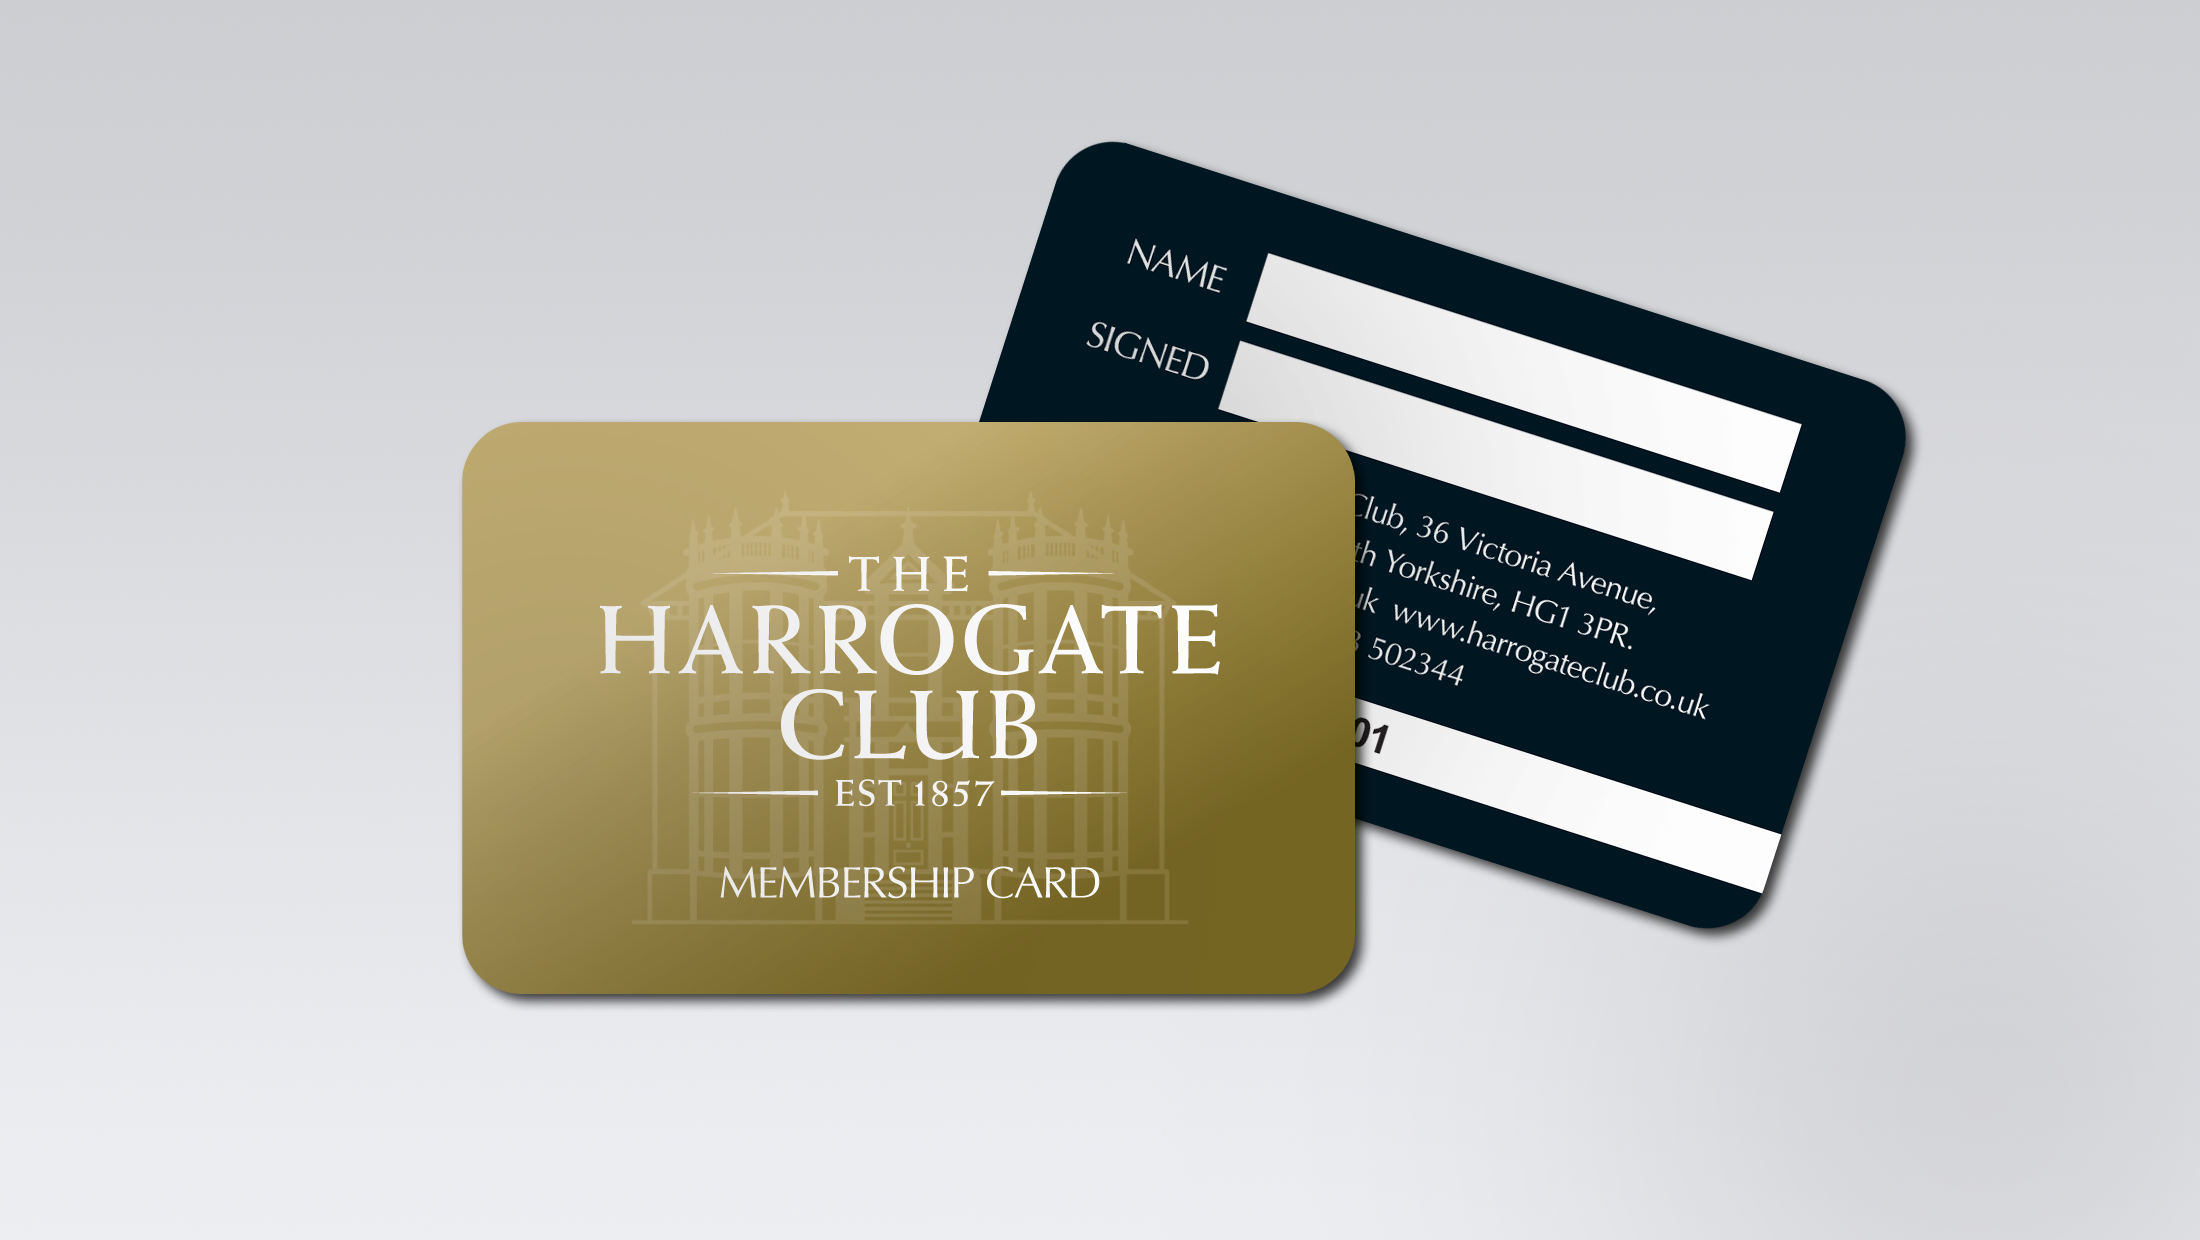 membership card design for The Harrogate Club – Club Card Design